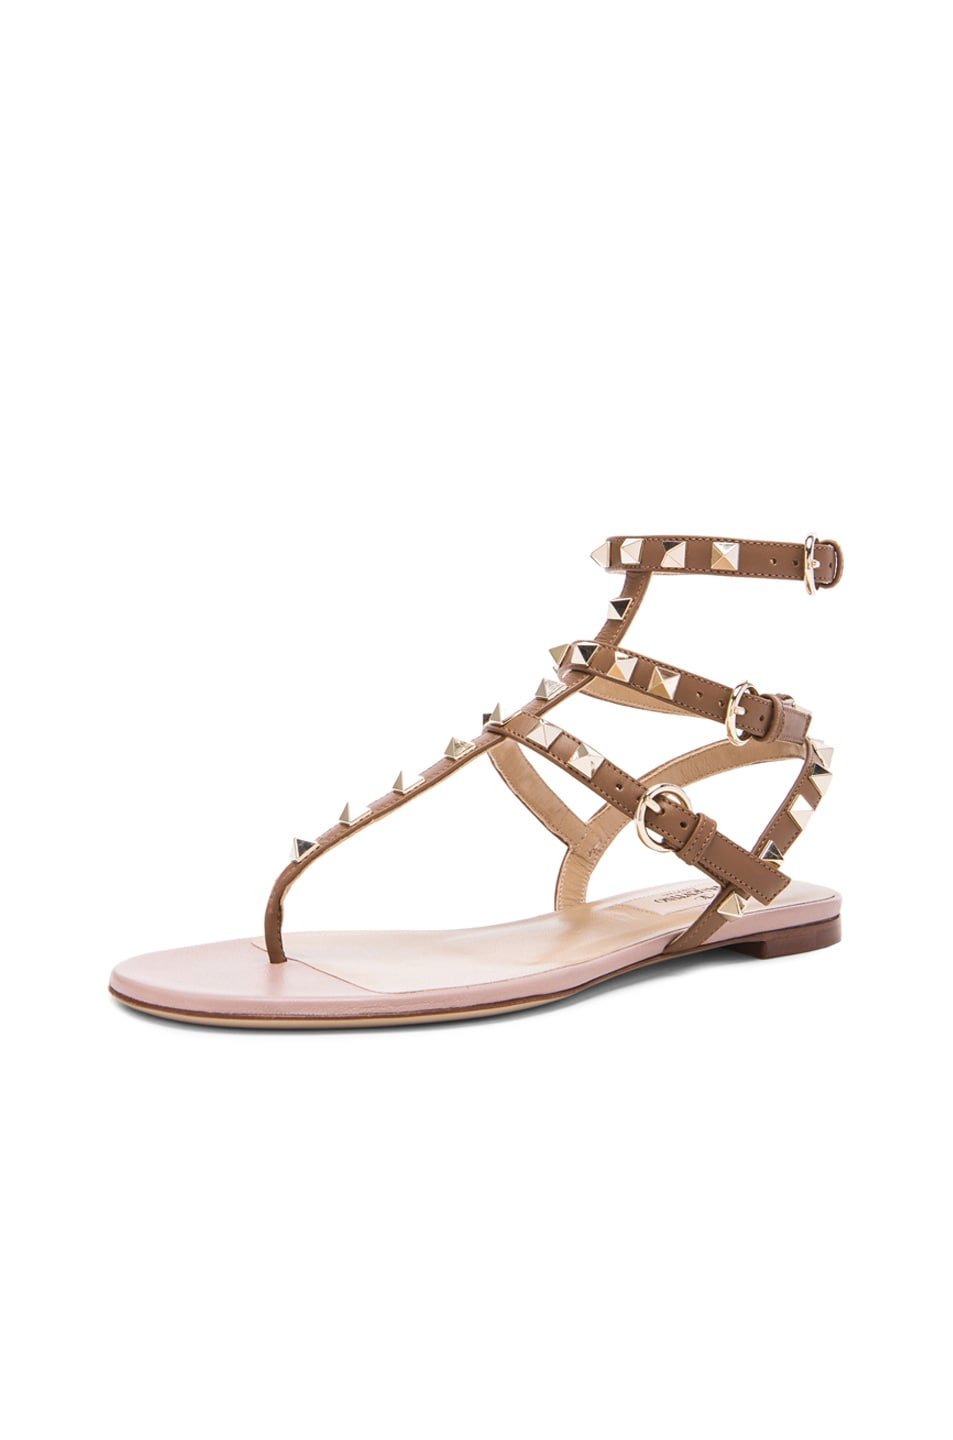 Image 2 of Valentino Rockstud Gladiator Leather Sandals T.05 in Deep Cuir